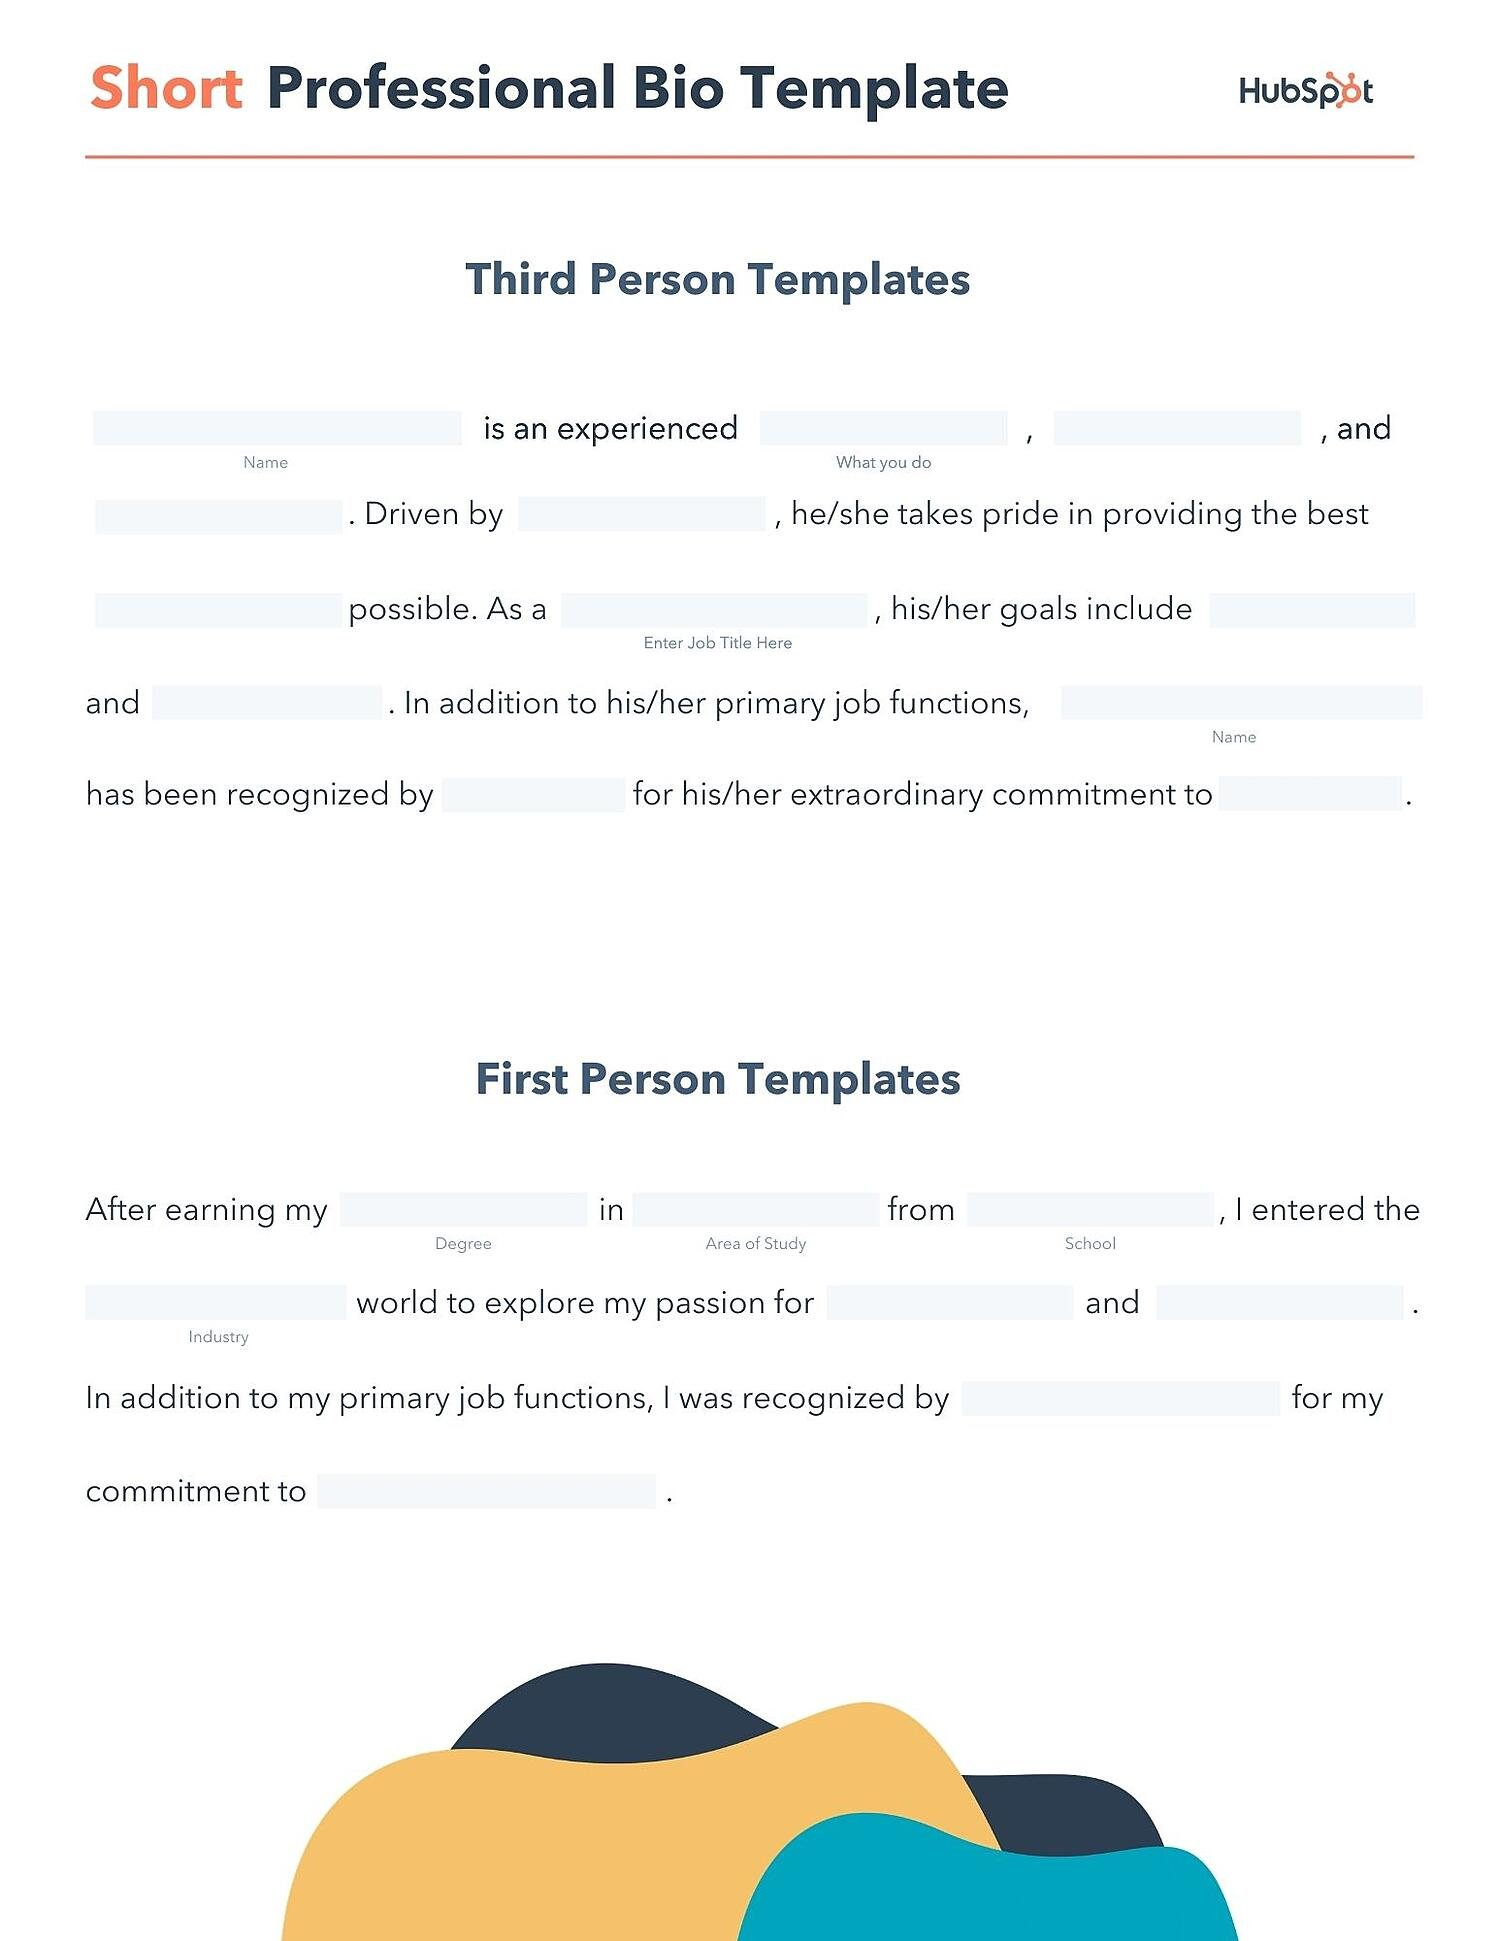 editable short professional bio pdf template